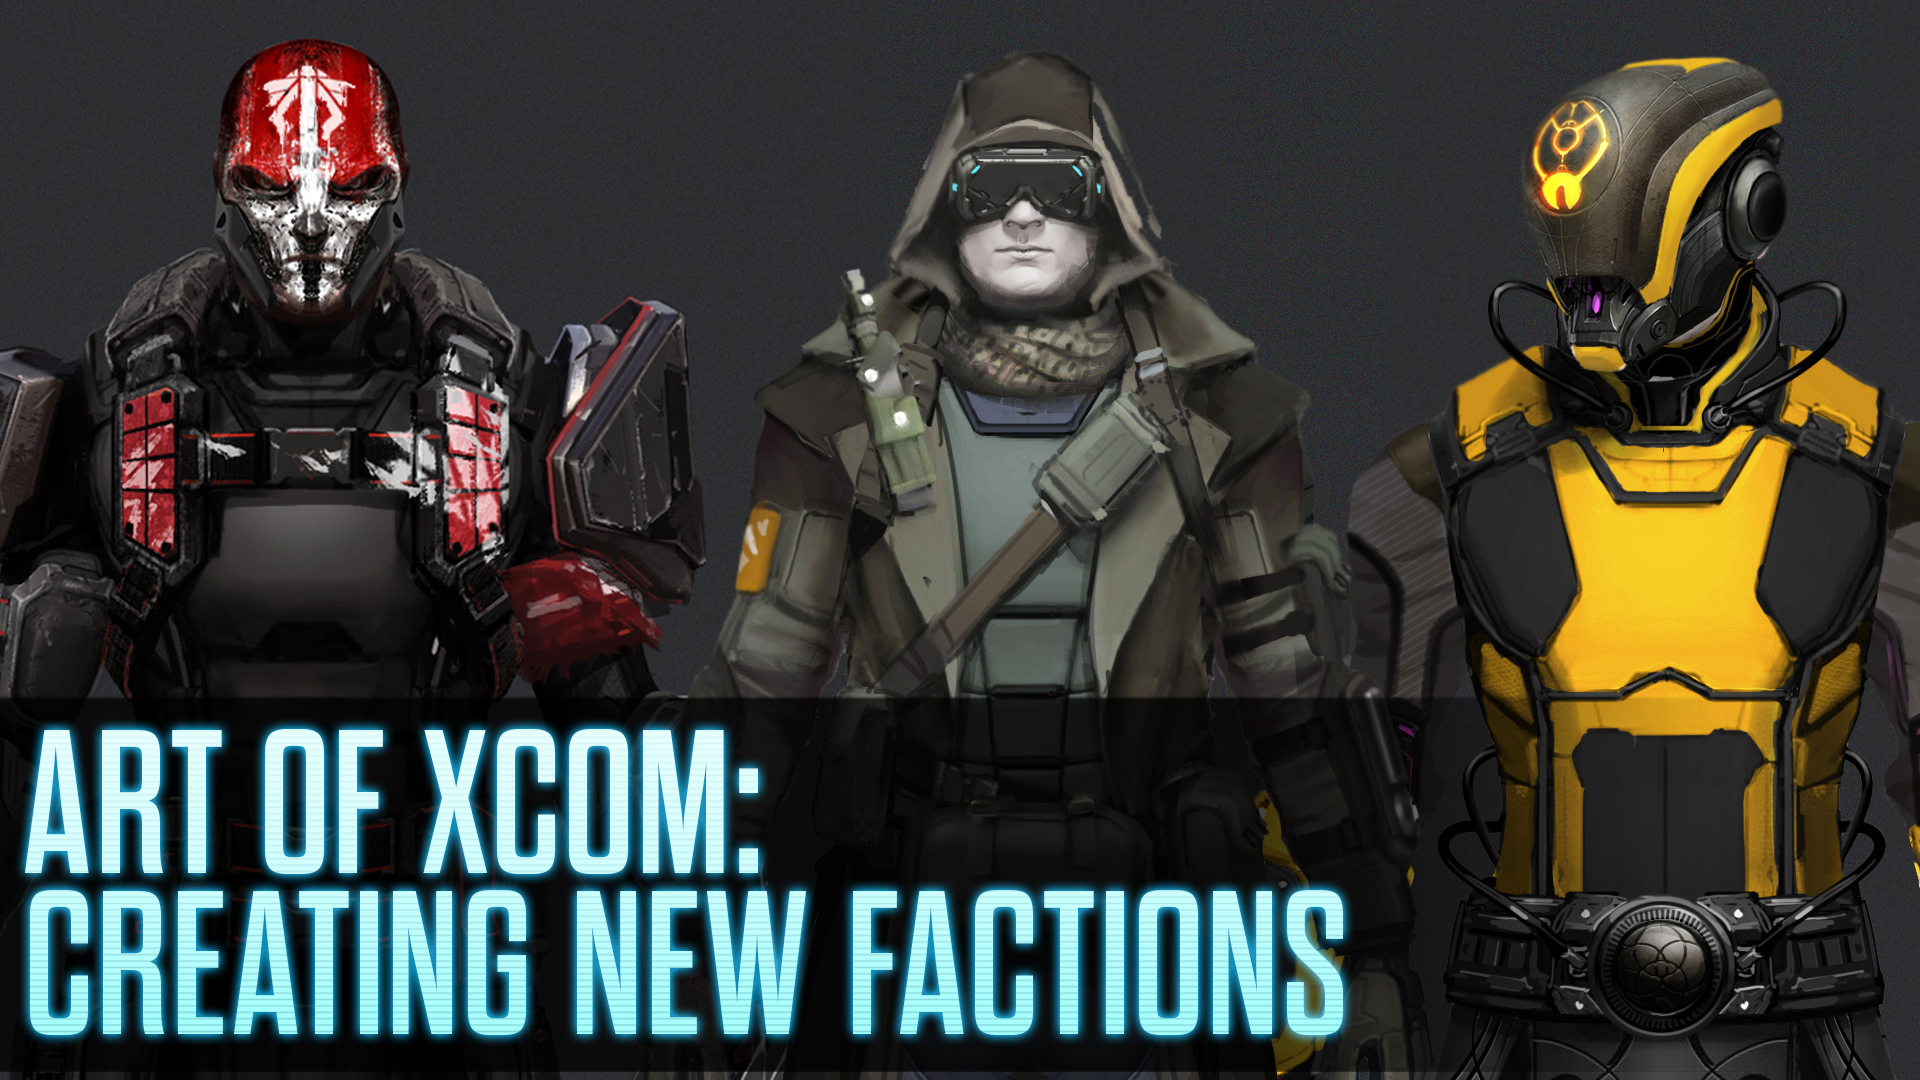 Steam community xcom 2 the new factions in xcom 2 war of the chosen are much more than just additional soldier classes to command they are groups with goals and ideologies that publicscrutiny Gallery